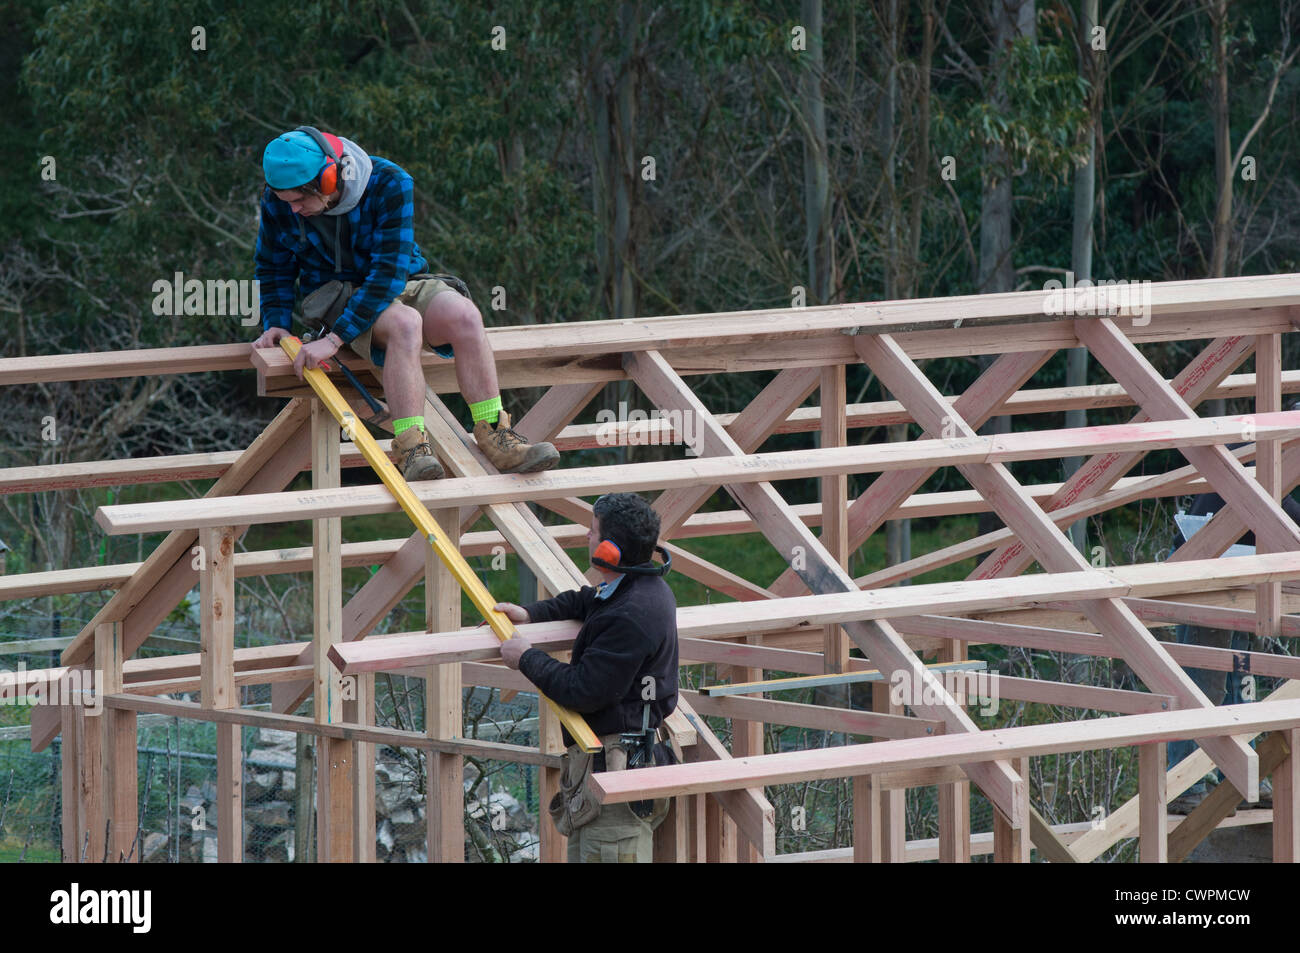 A builder working with an apprentice on the roof joists of a building - Stock Image